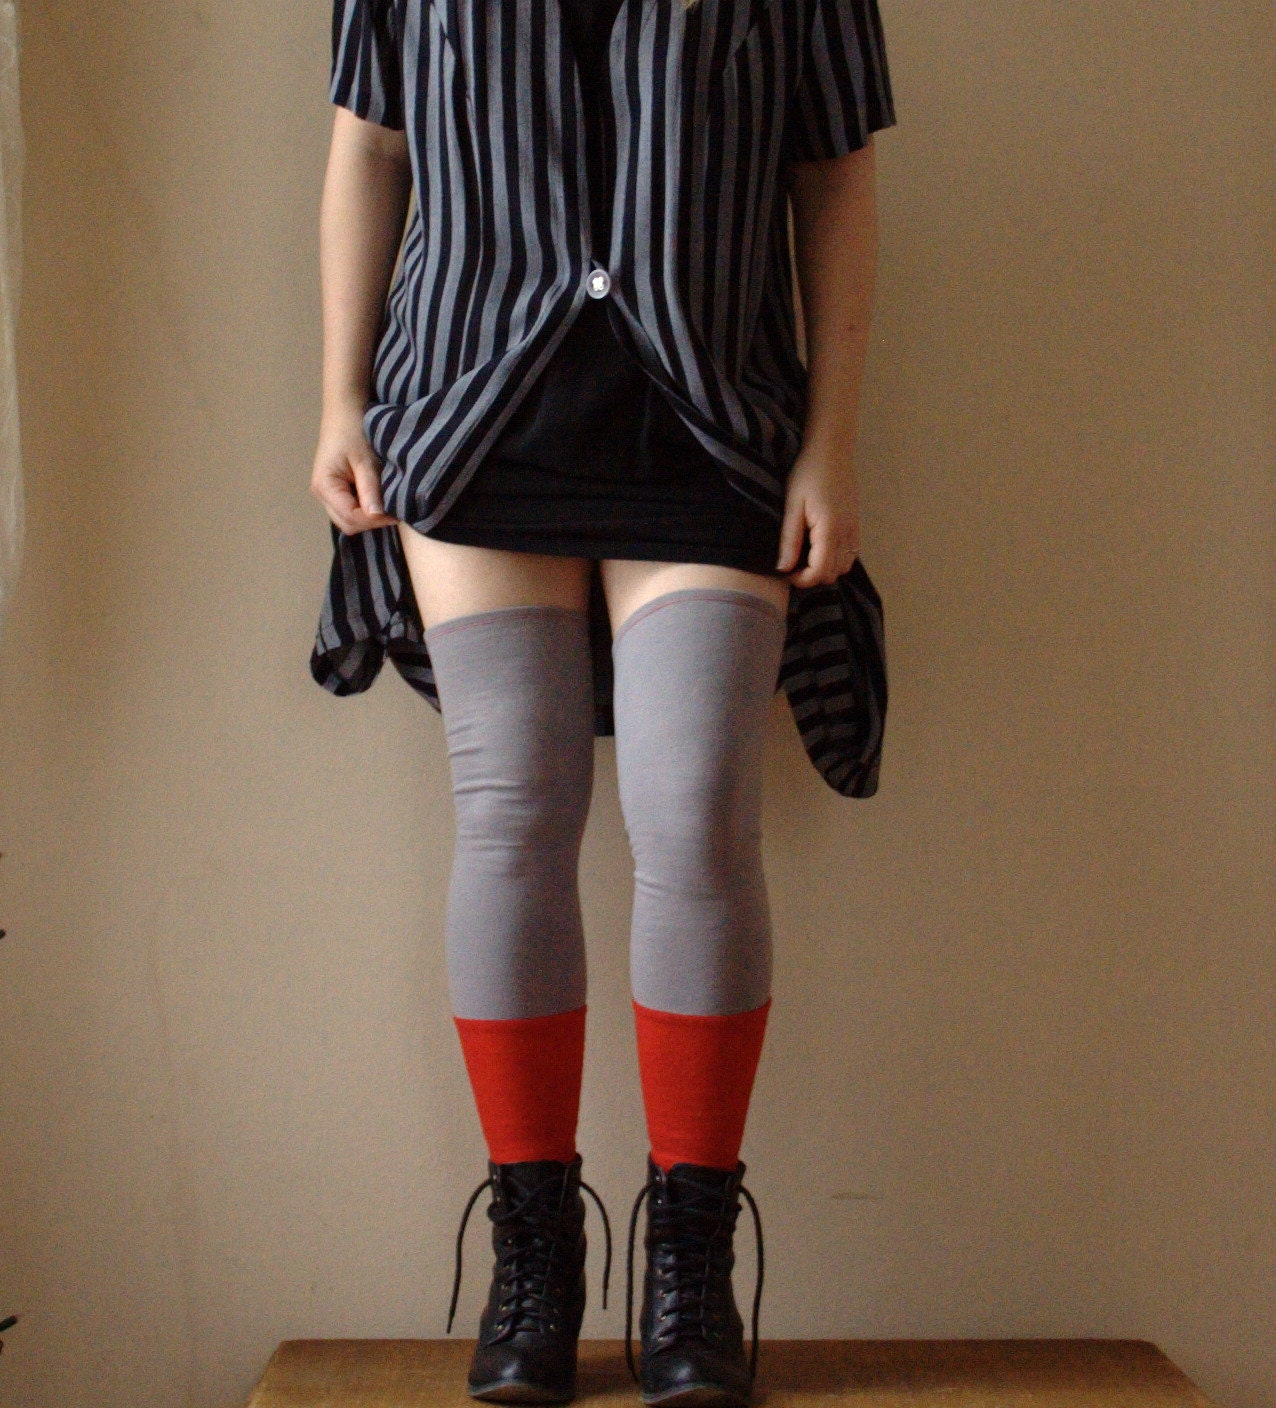 Thigh High Leg Warmers. Above The Knee. Color Block Grey And